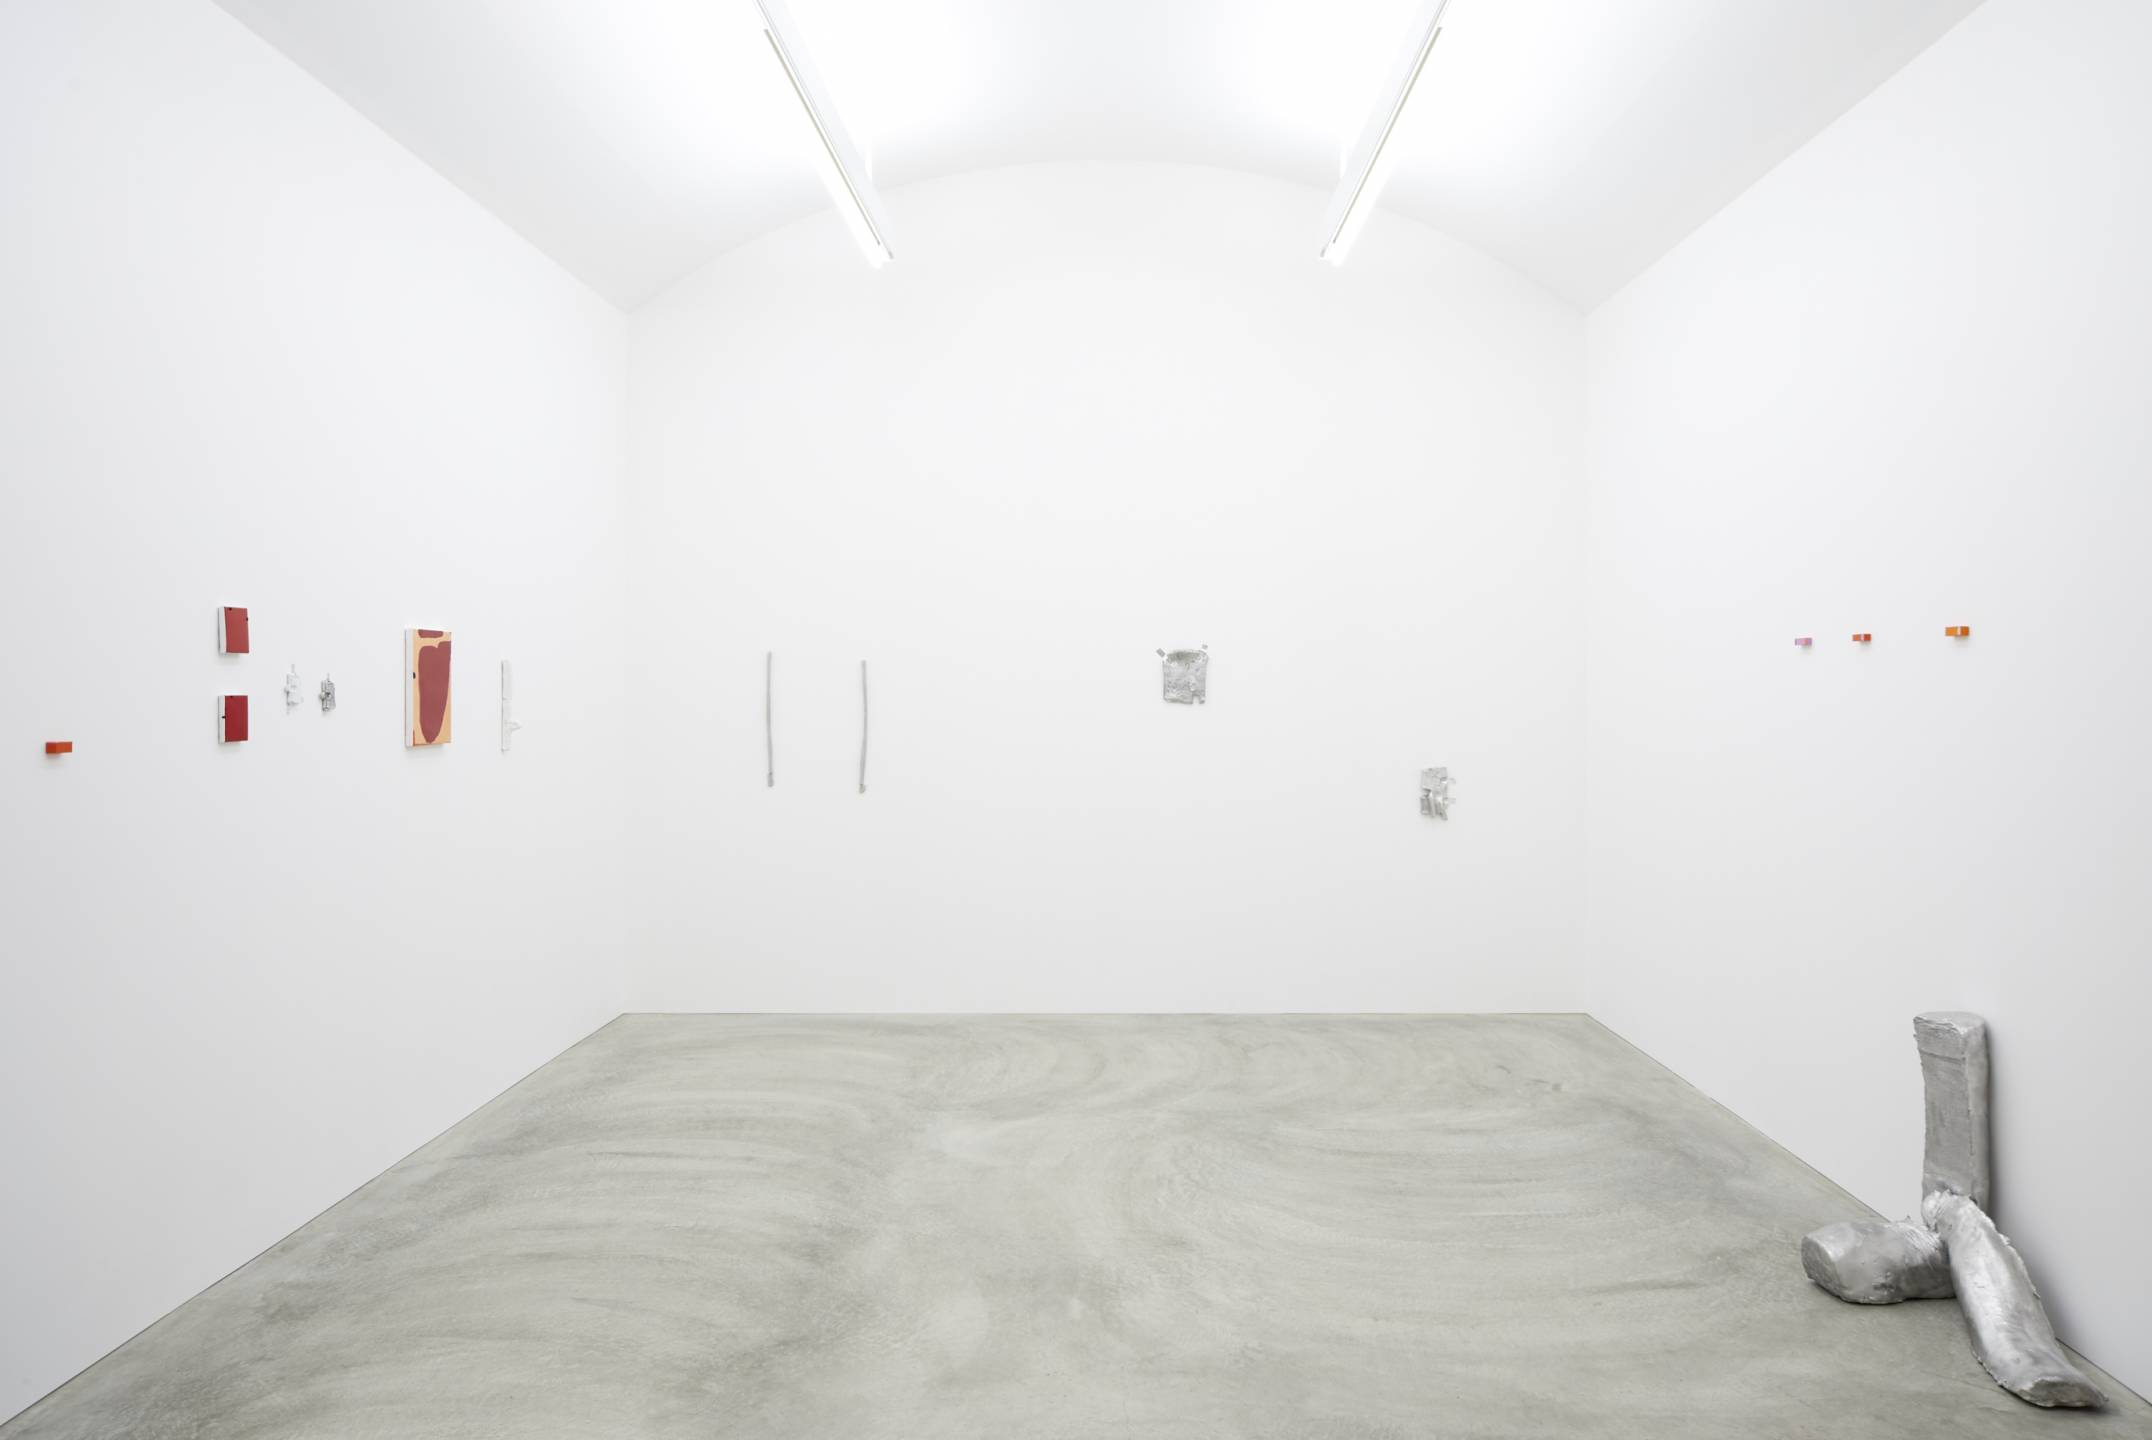 Paulo Monteiro, <em>The outside of distance,</em> 2017, MISAKO & ROSEN and Tomio Koyama Gallery, Tokyo - Mendes Wood DM